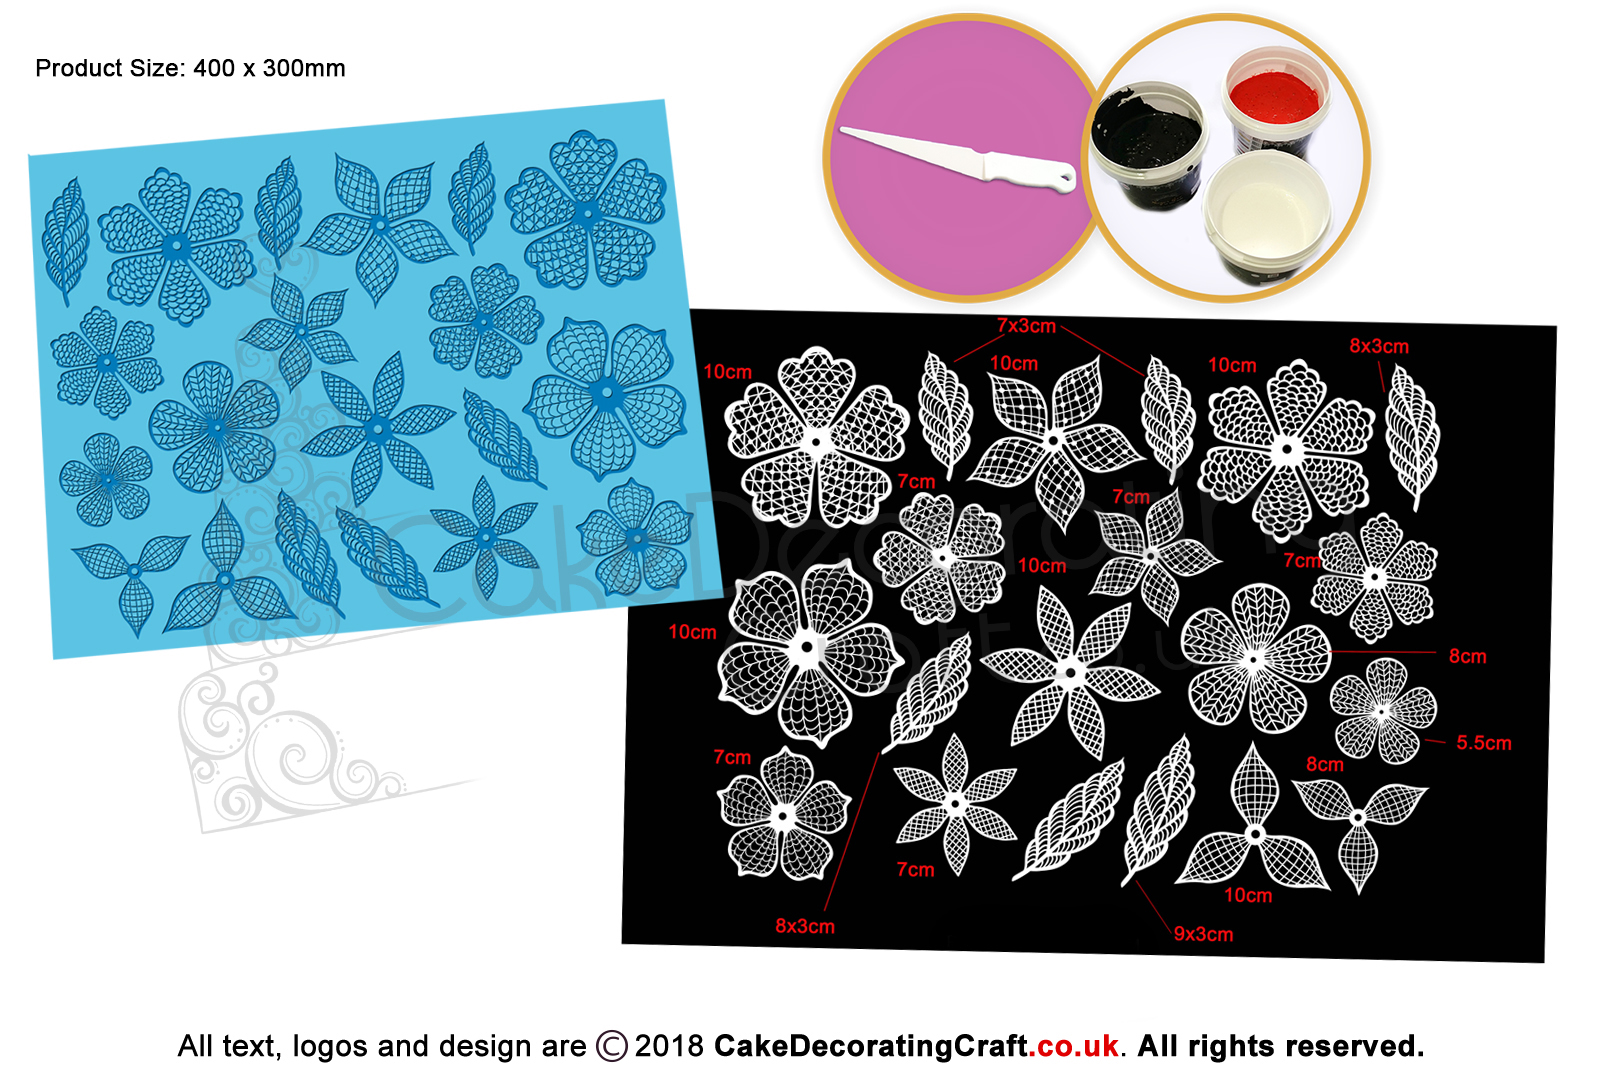 3d Floral Fantasy Cake Lace Mats Cake Decorating Starter Kit